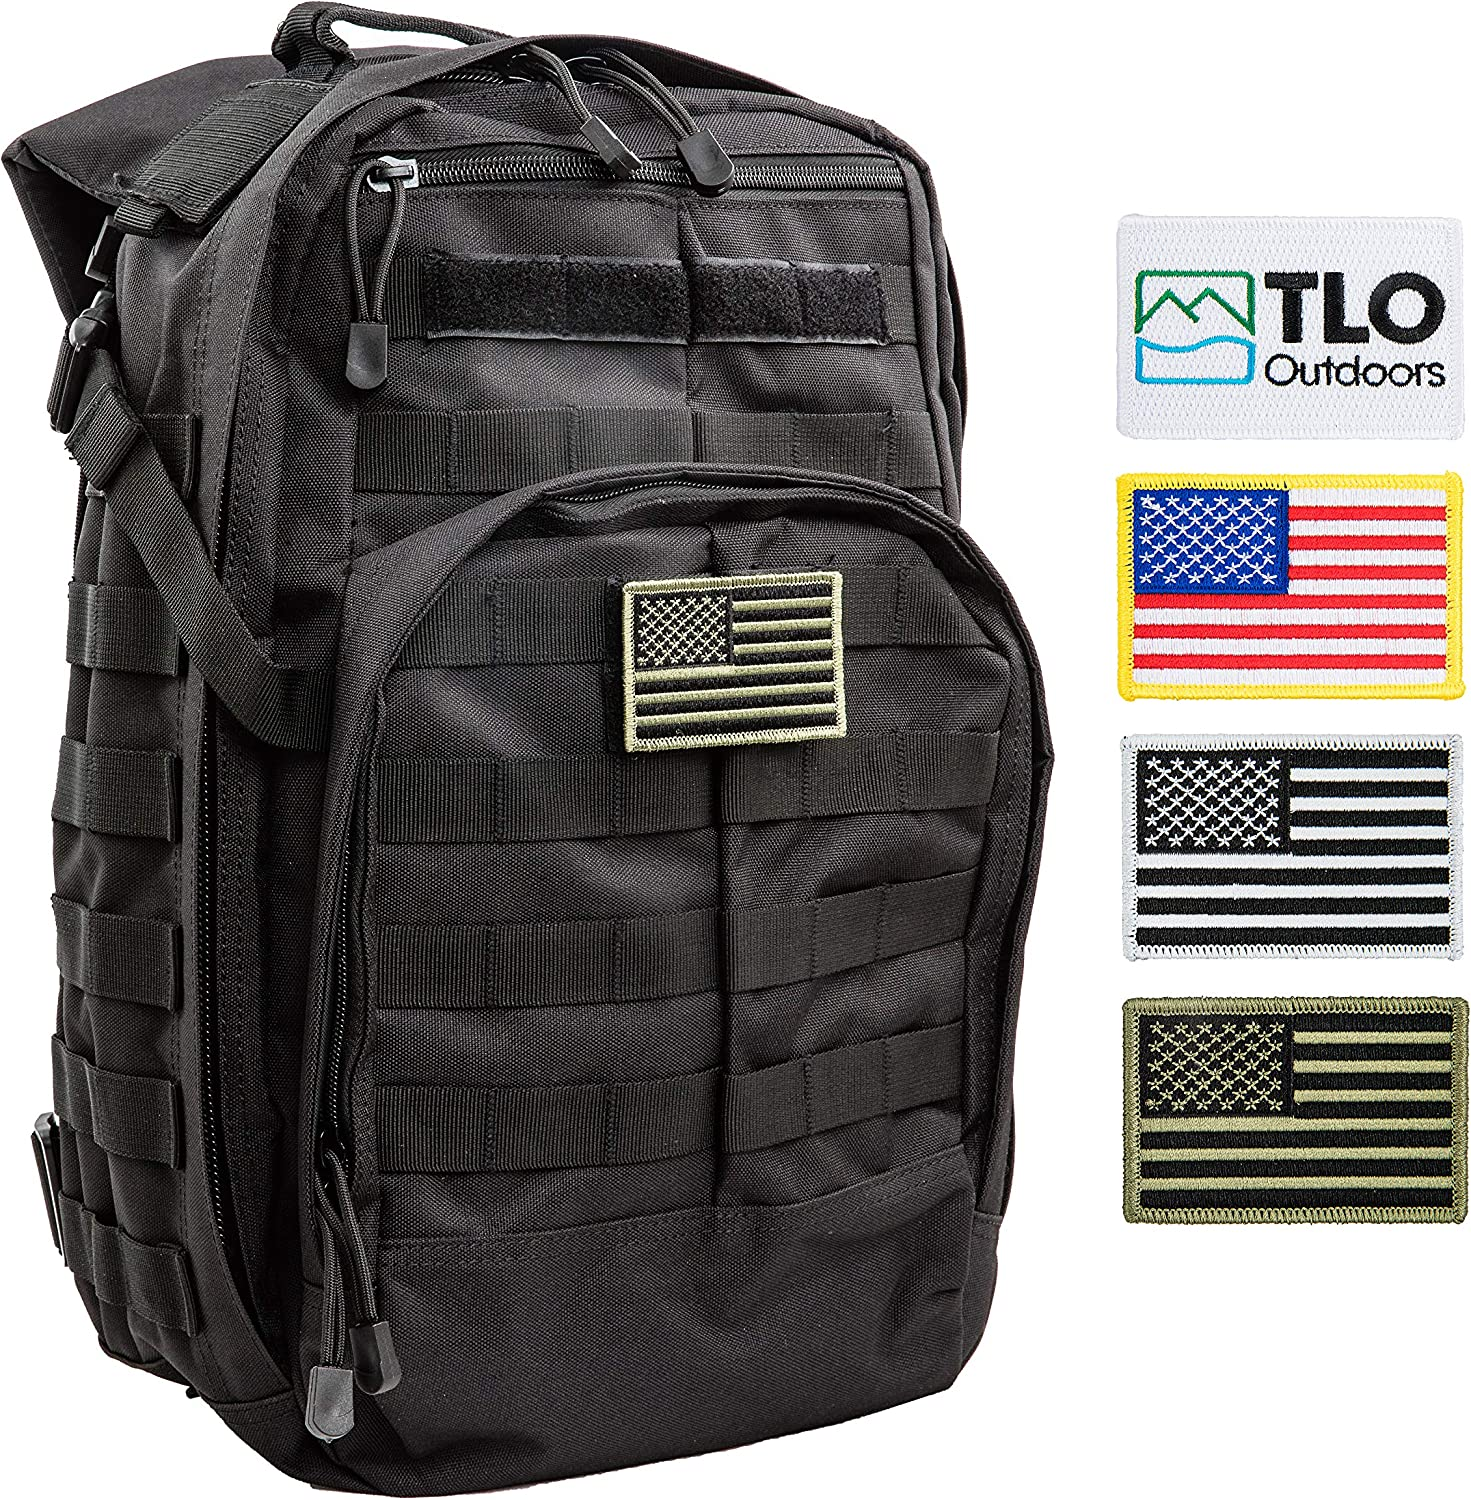 TLO TacPack12Tactical Backpack - 24 Storage Daypack, Rucksack with MOLLE, Patches